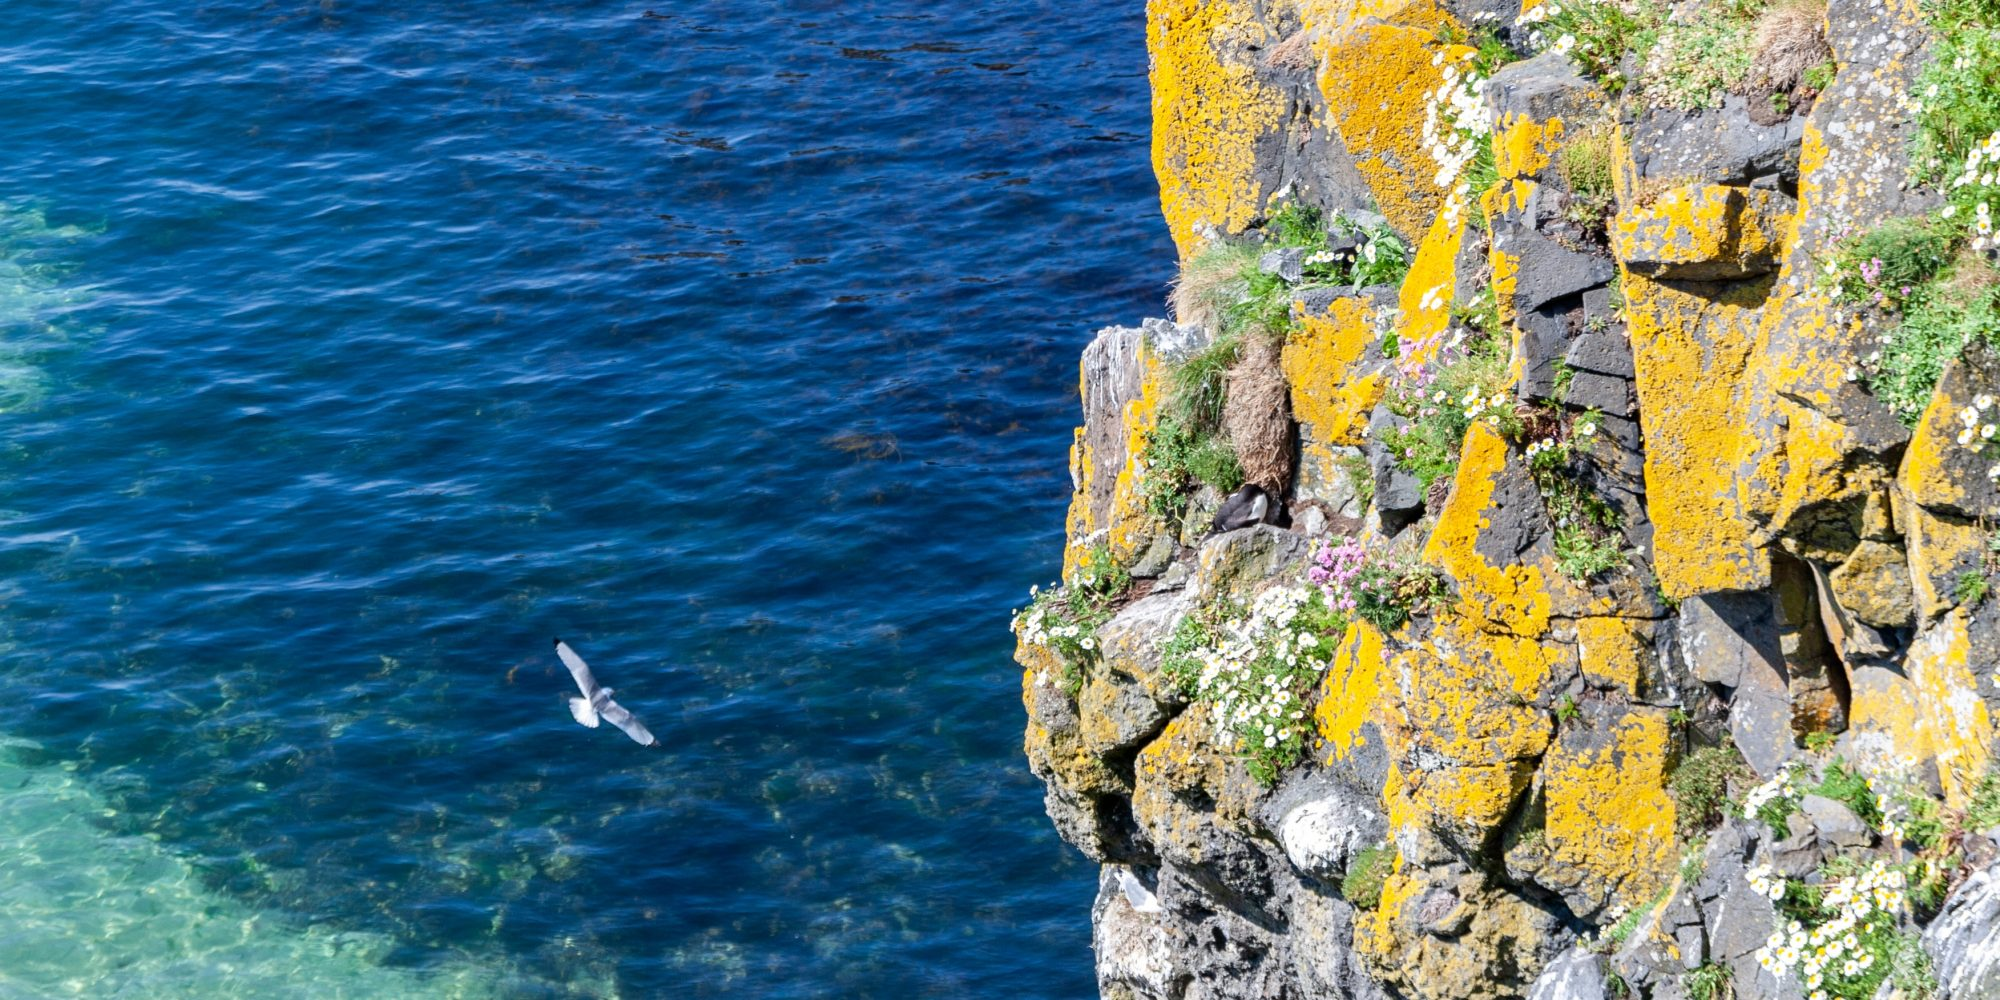 Rock face overlooking sea, seagull flying over water